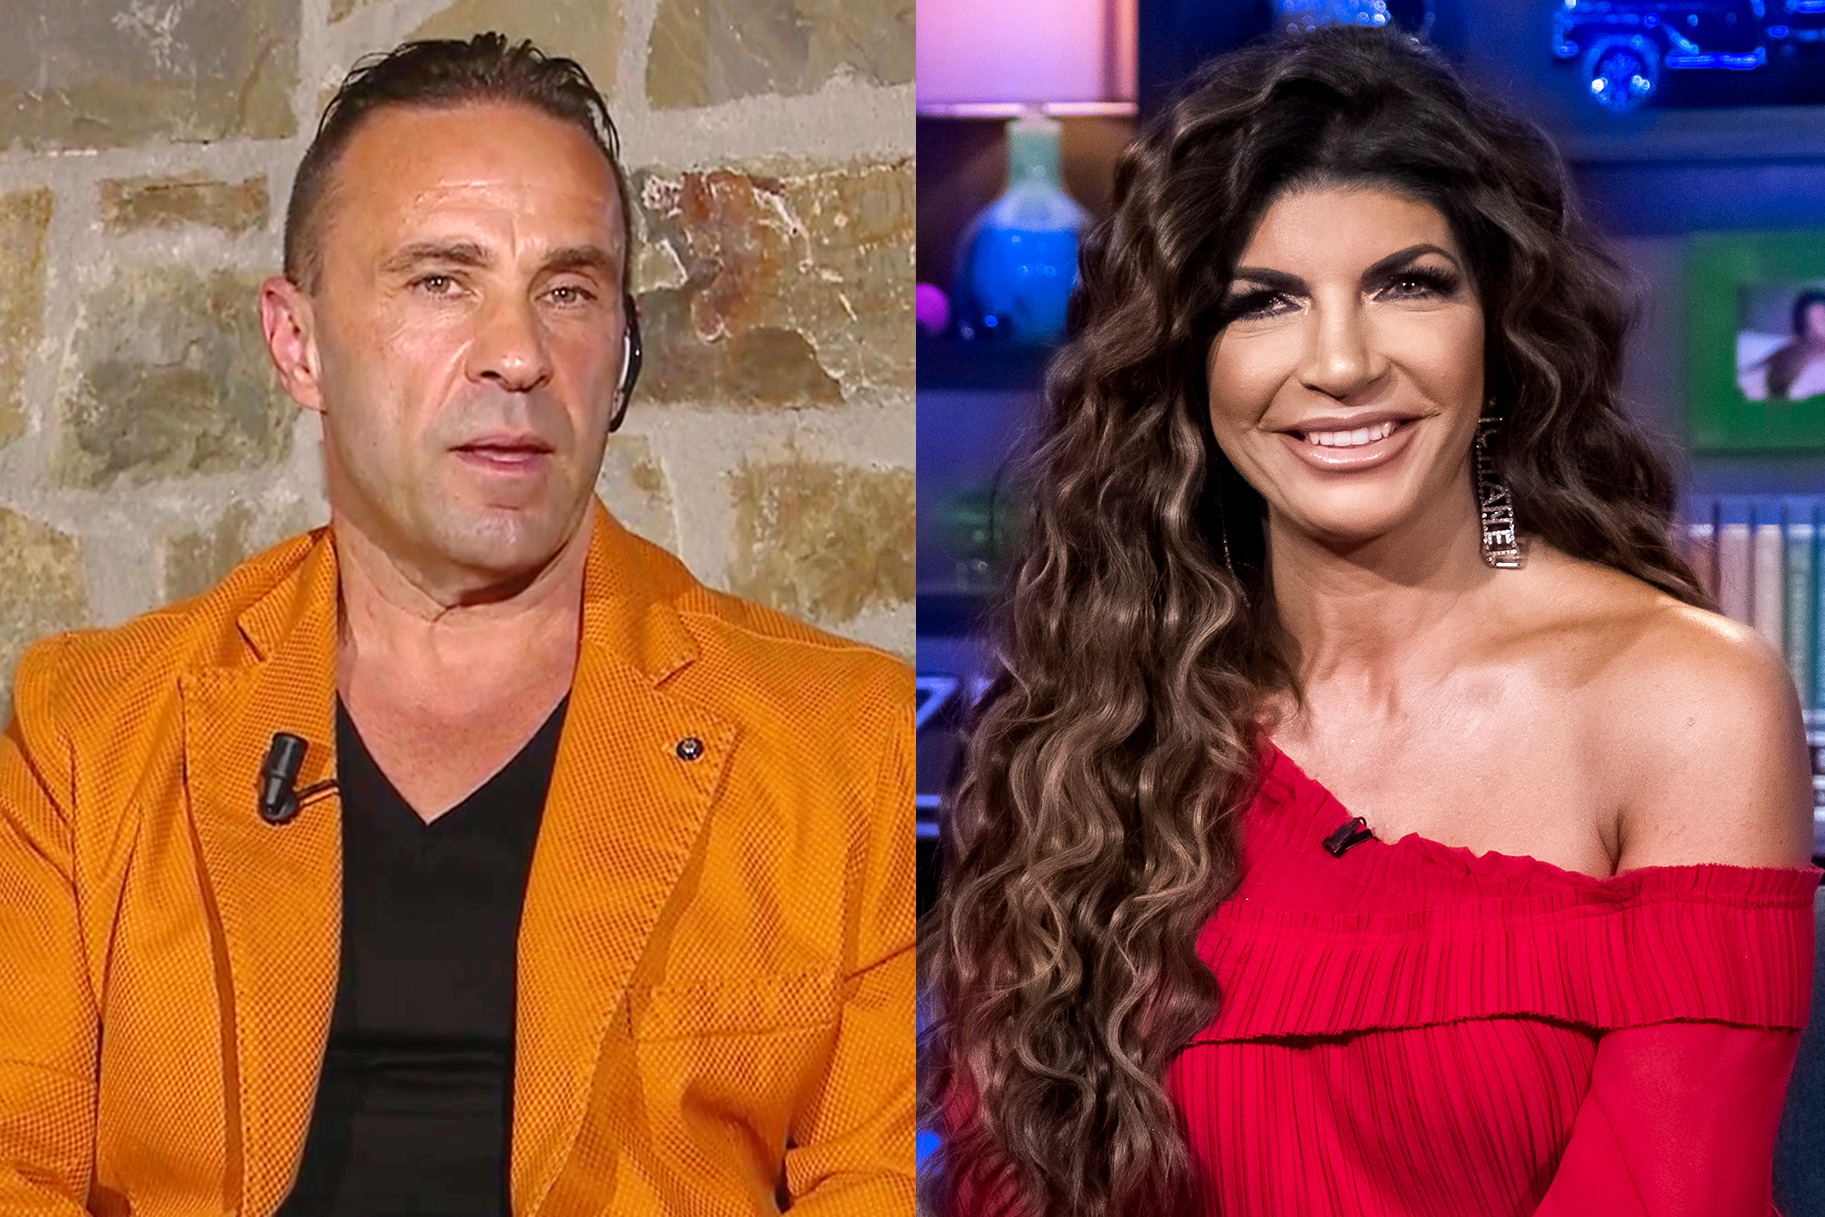 teresa-and-joe-giudice-think-divorcing-was-the-right-thing-to-do-heres-why